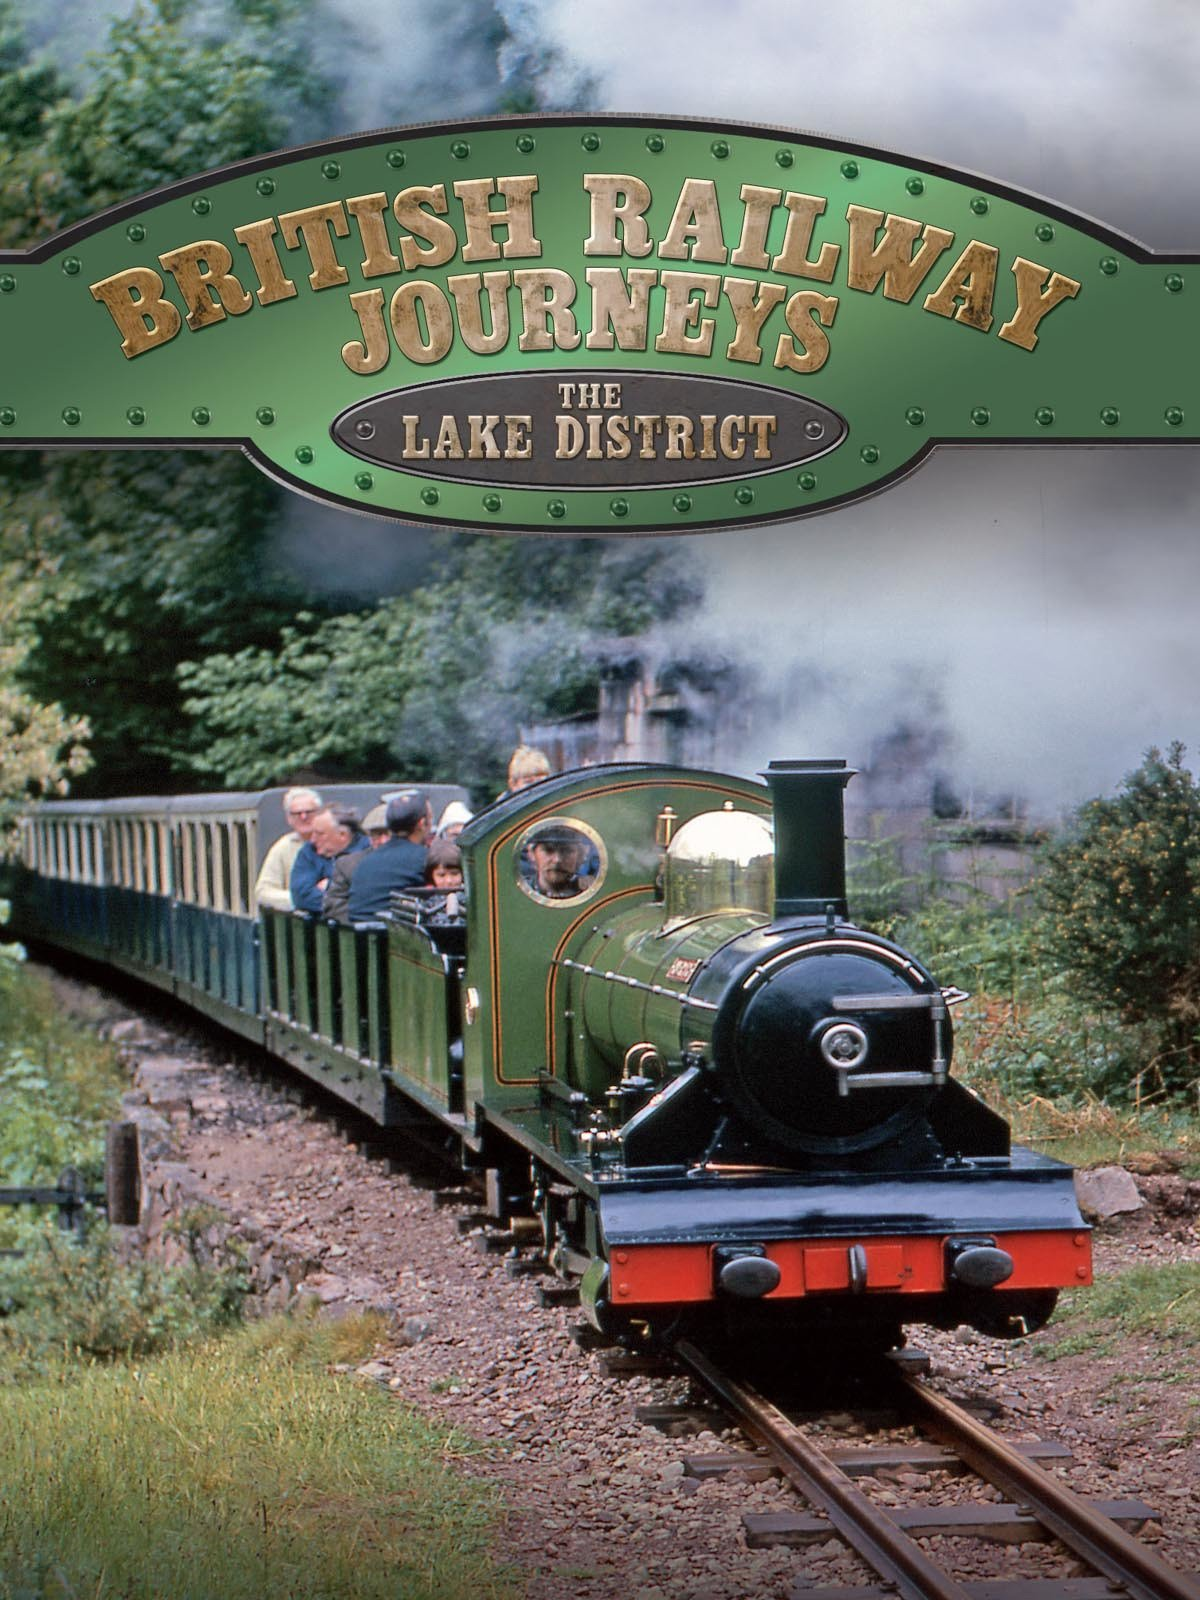 British Railway Journeys: The Lake District